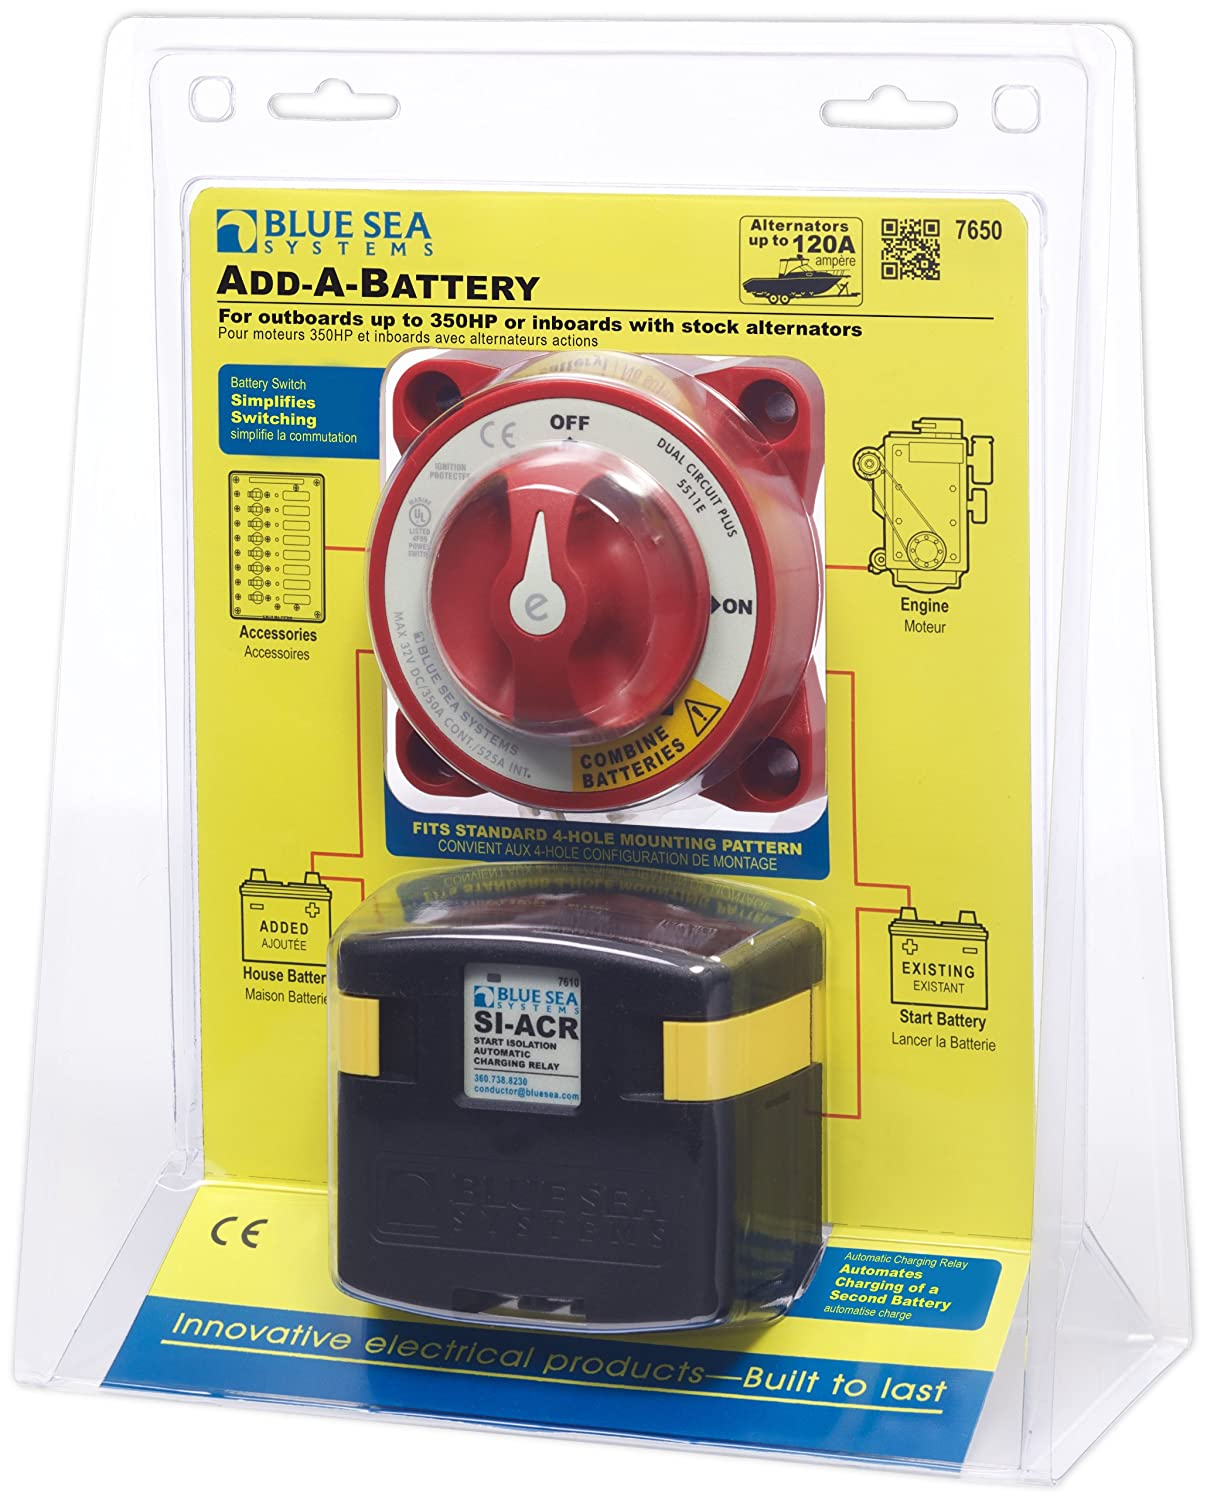 Amazon.com : Blue Sea Systems 7650 Add-A-Battery Kit : Automotive Battery  Products : Sports & Outdoors